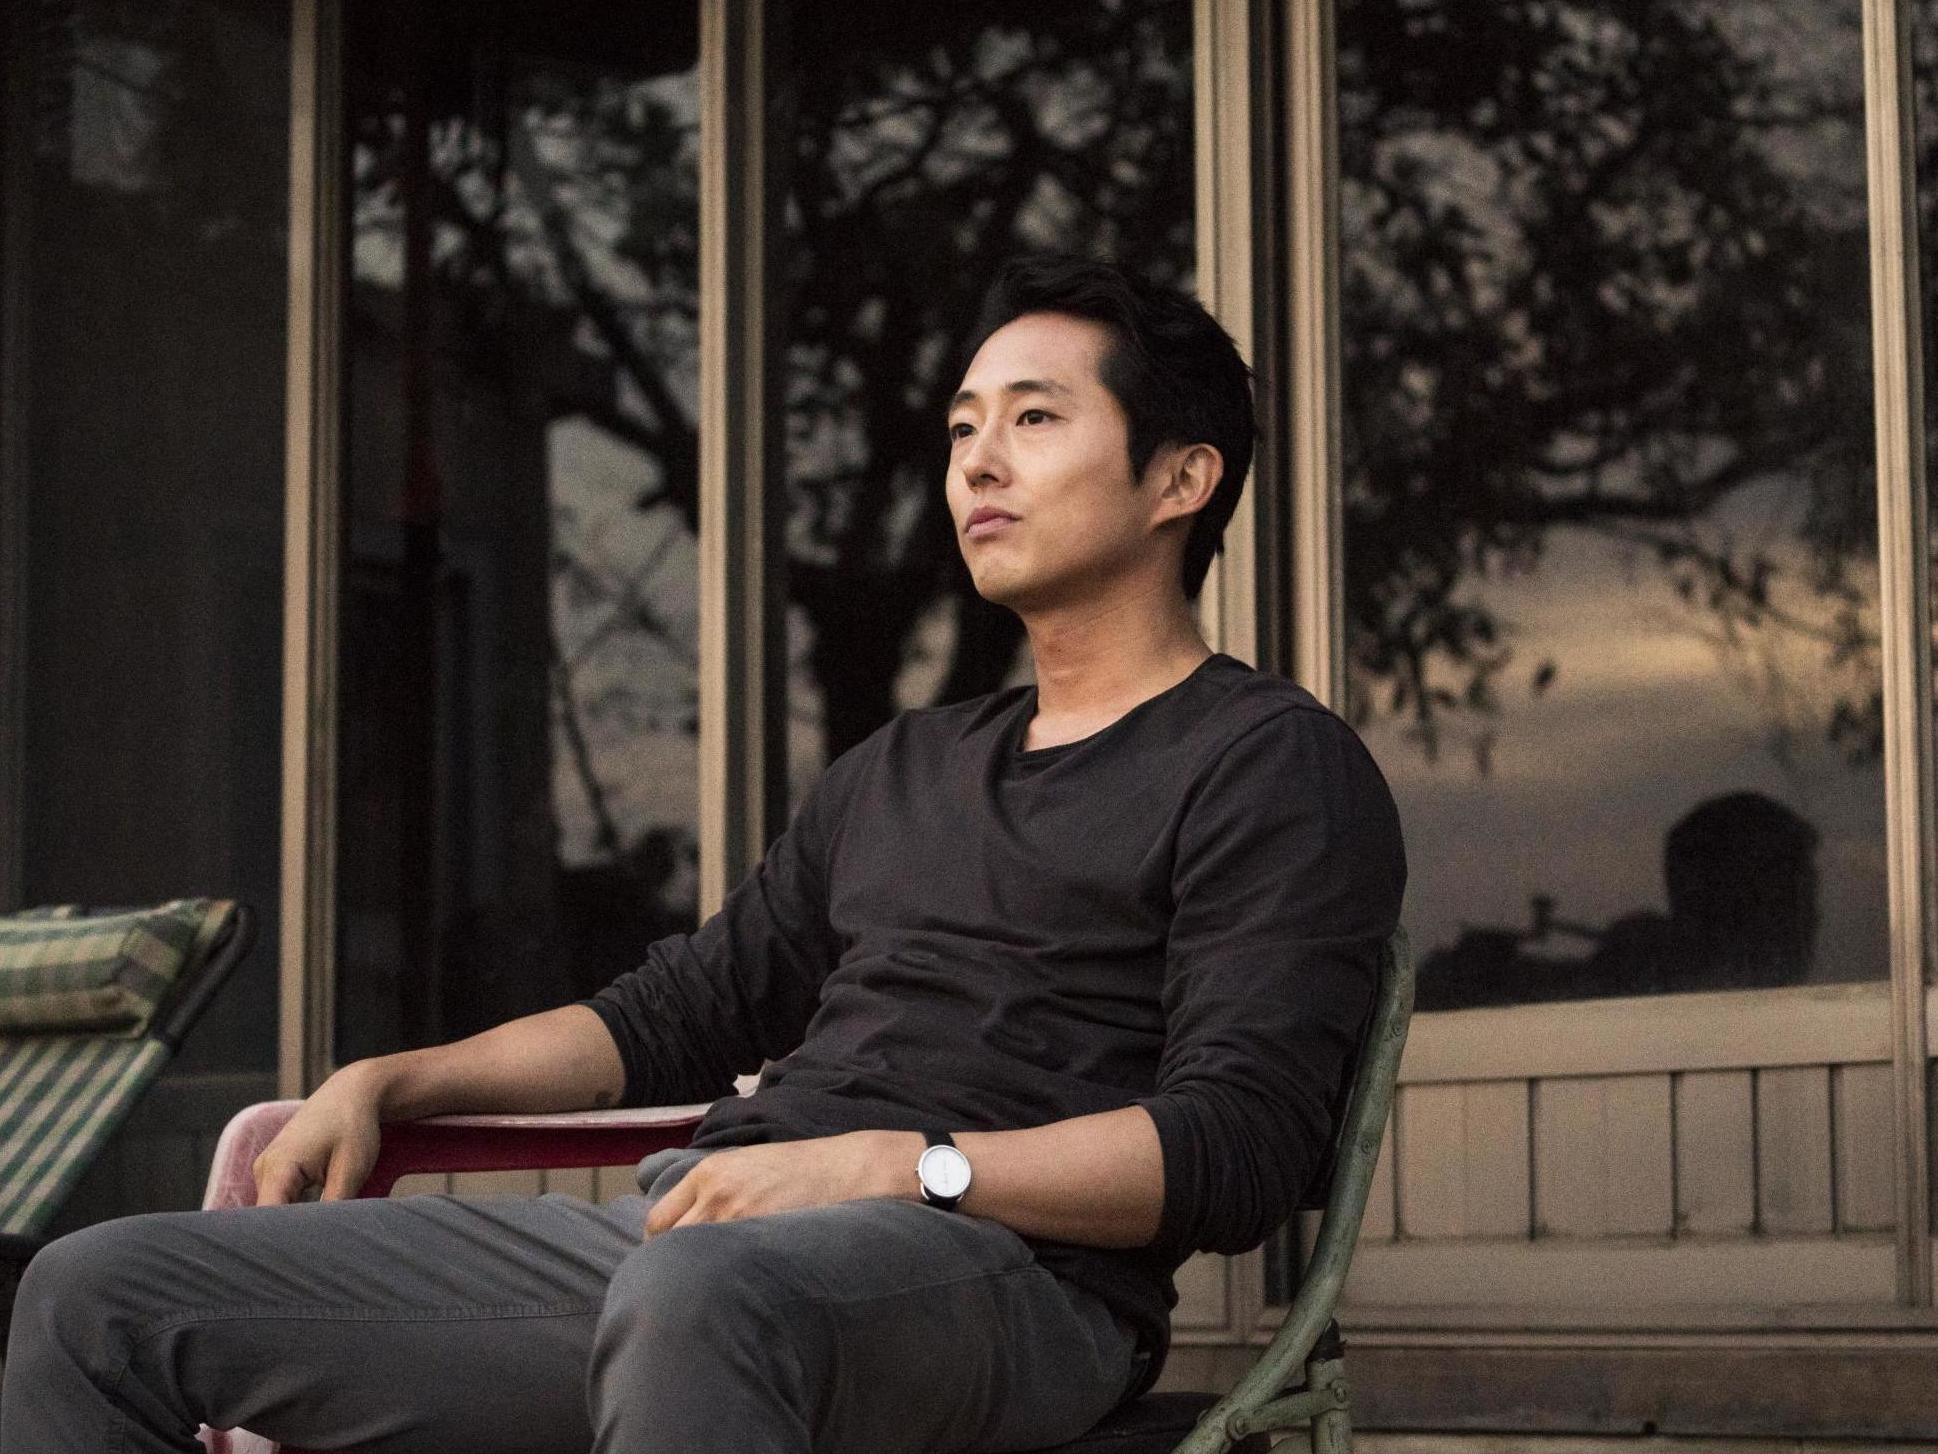 Burning actor Steven Yeun interview: 'I feel like a man with no country' |  The Independent | The Independent